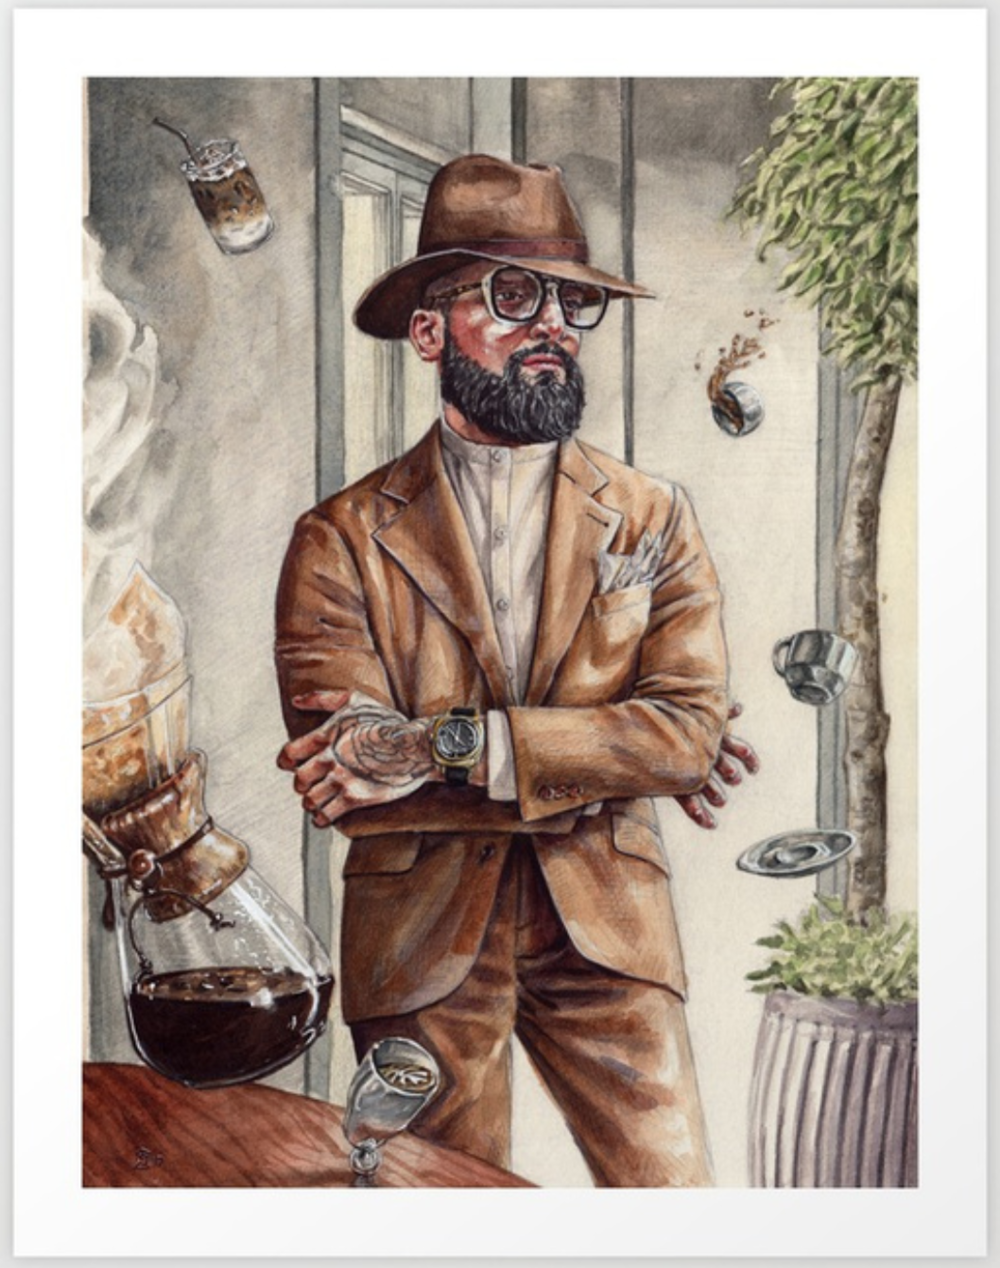 Buy A Print of The Coffee King - Prints on Society6